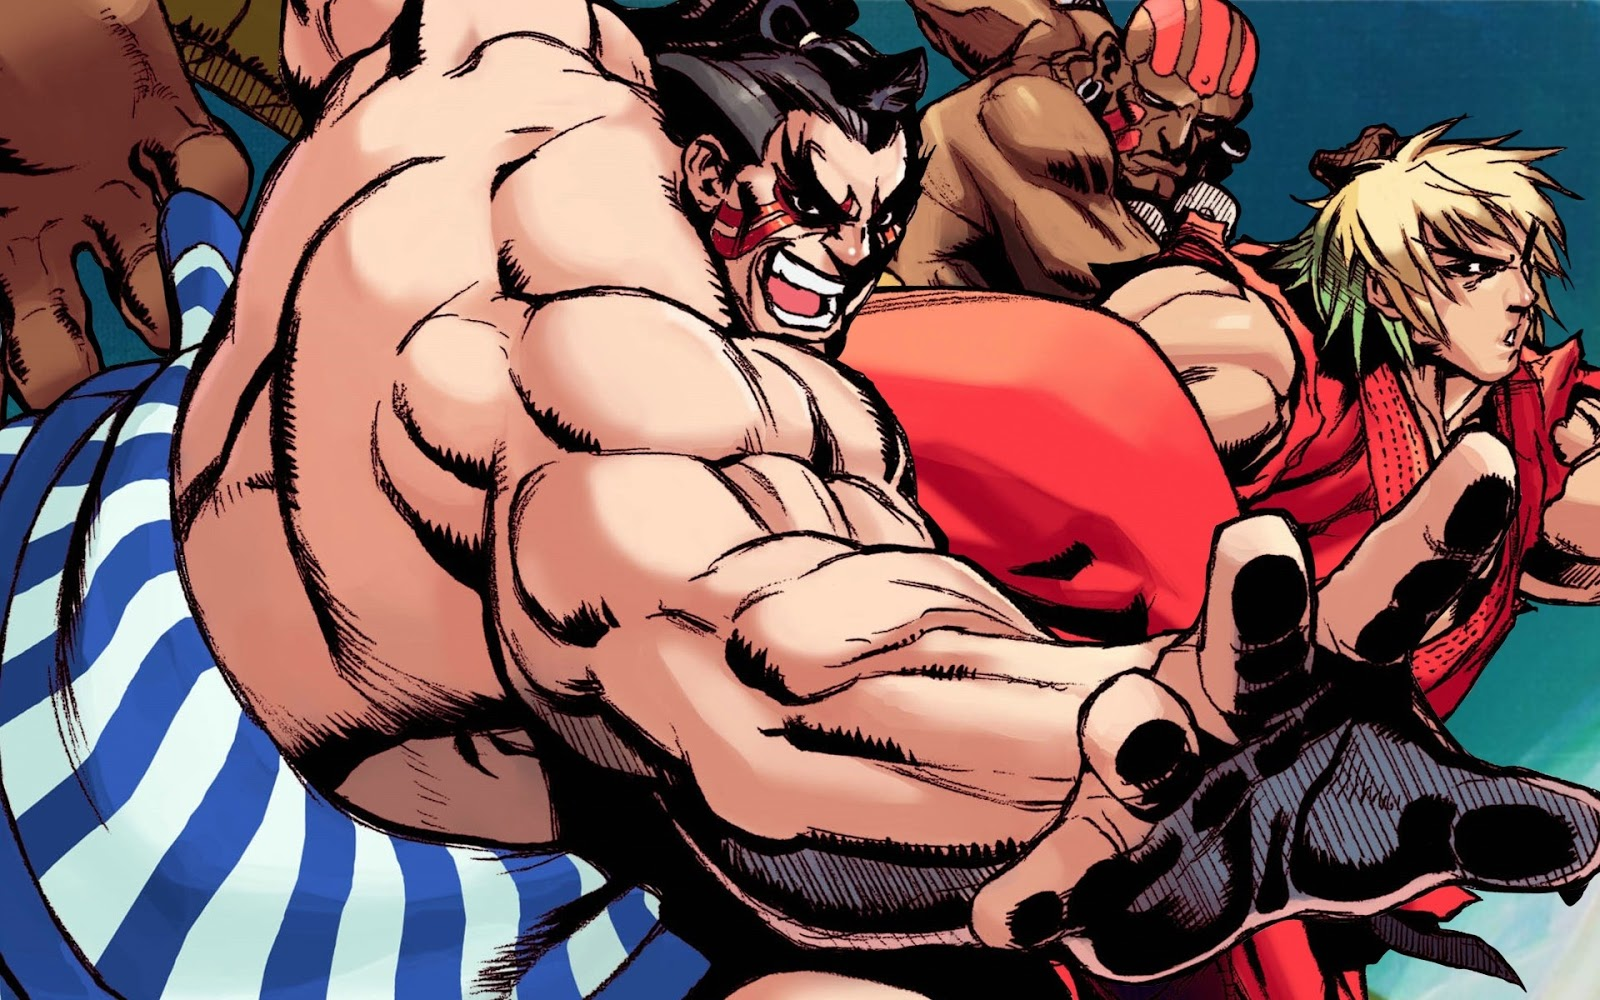 Street Fighter HD & Widescreen Wallpaper 0.041877181210225